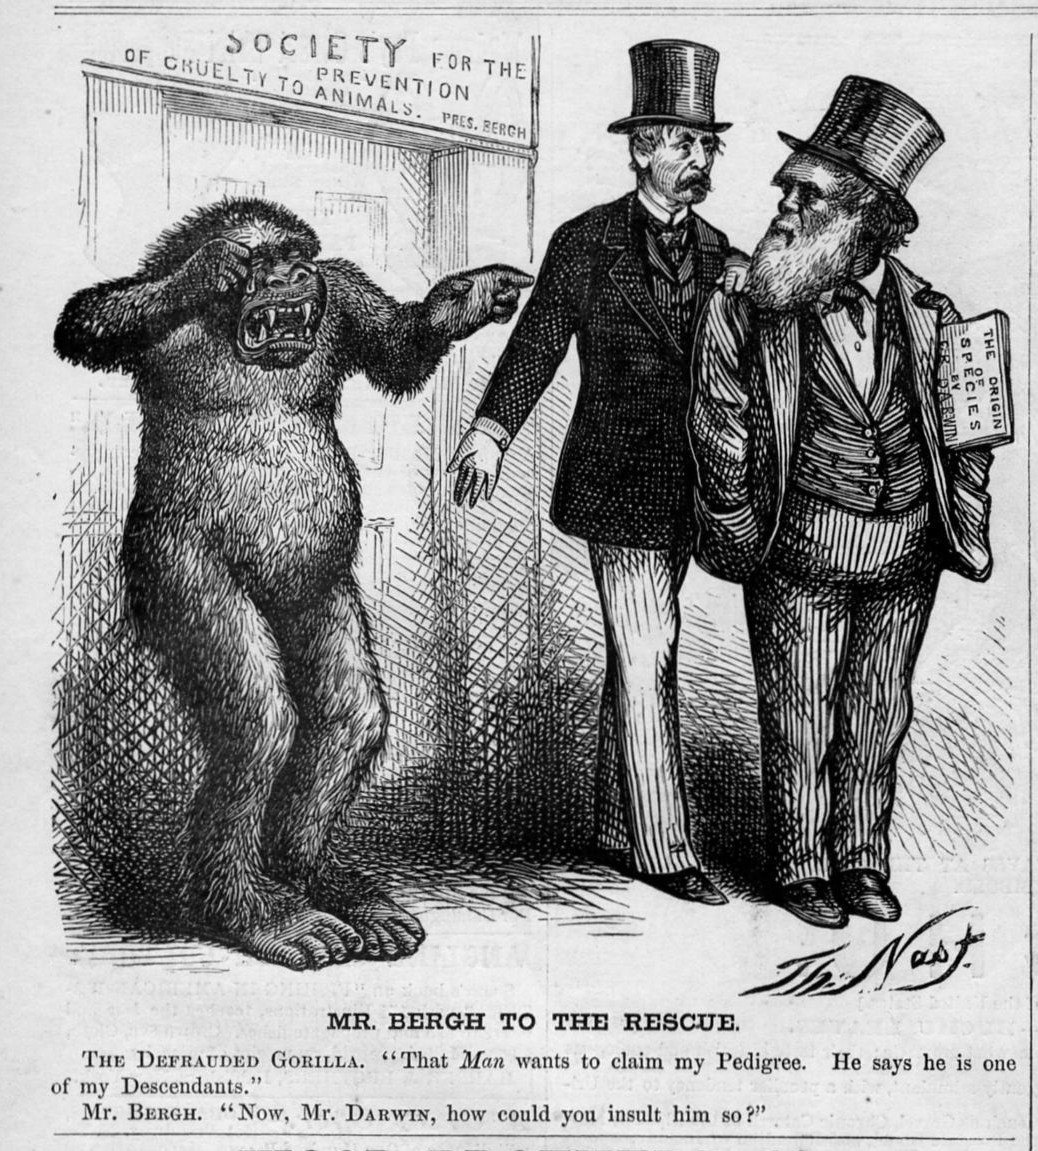 charles darwin and the evolutionary theory 10072017 before charles darwin and his groundbreaking theory of evolution , primates were mainly used as caricatures of human.